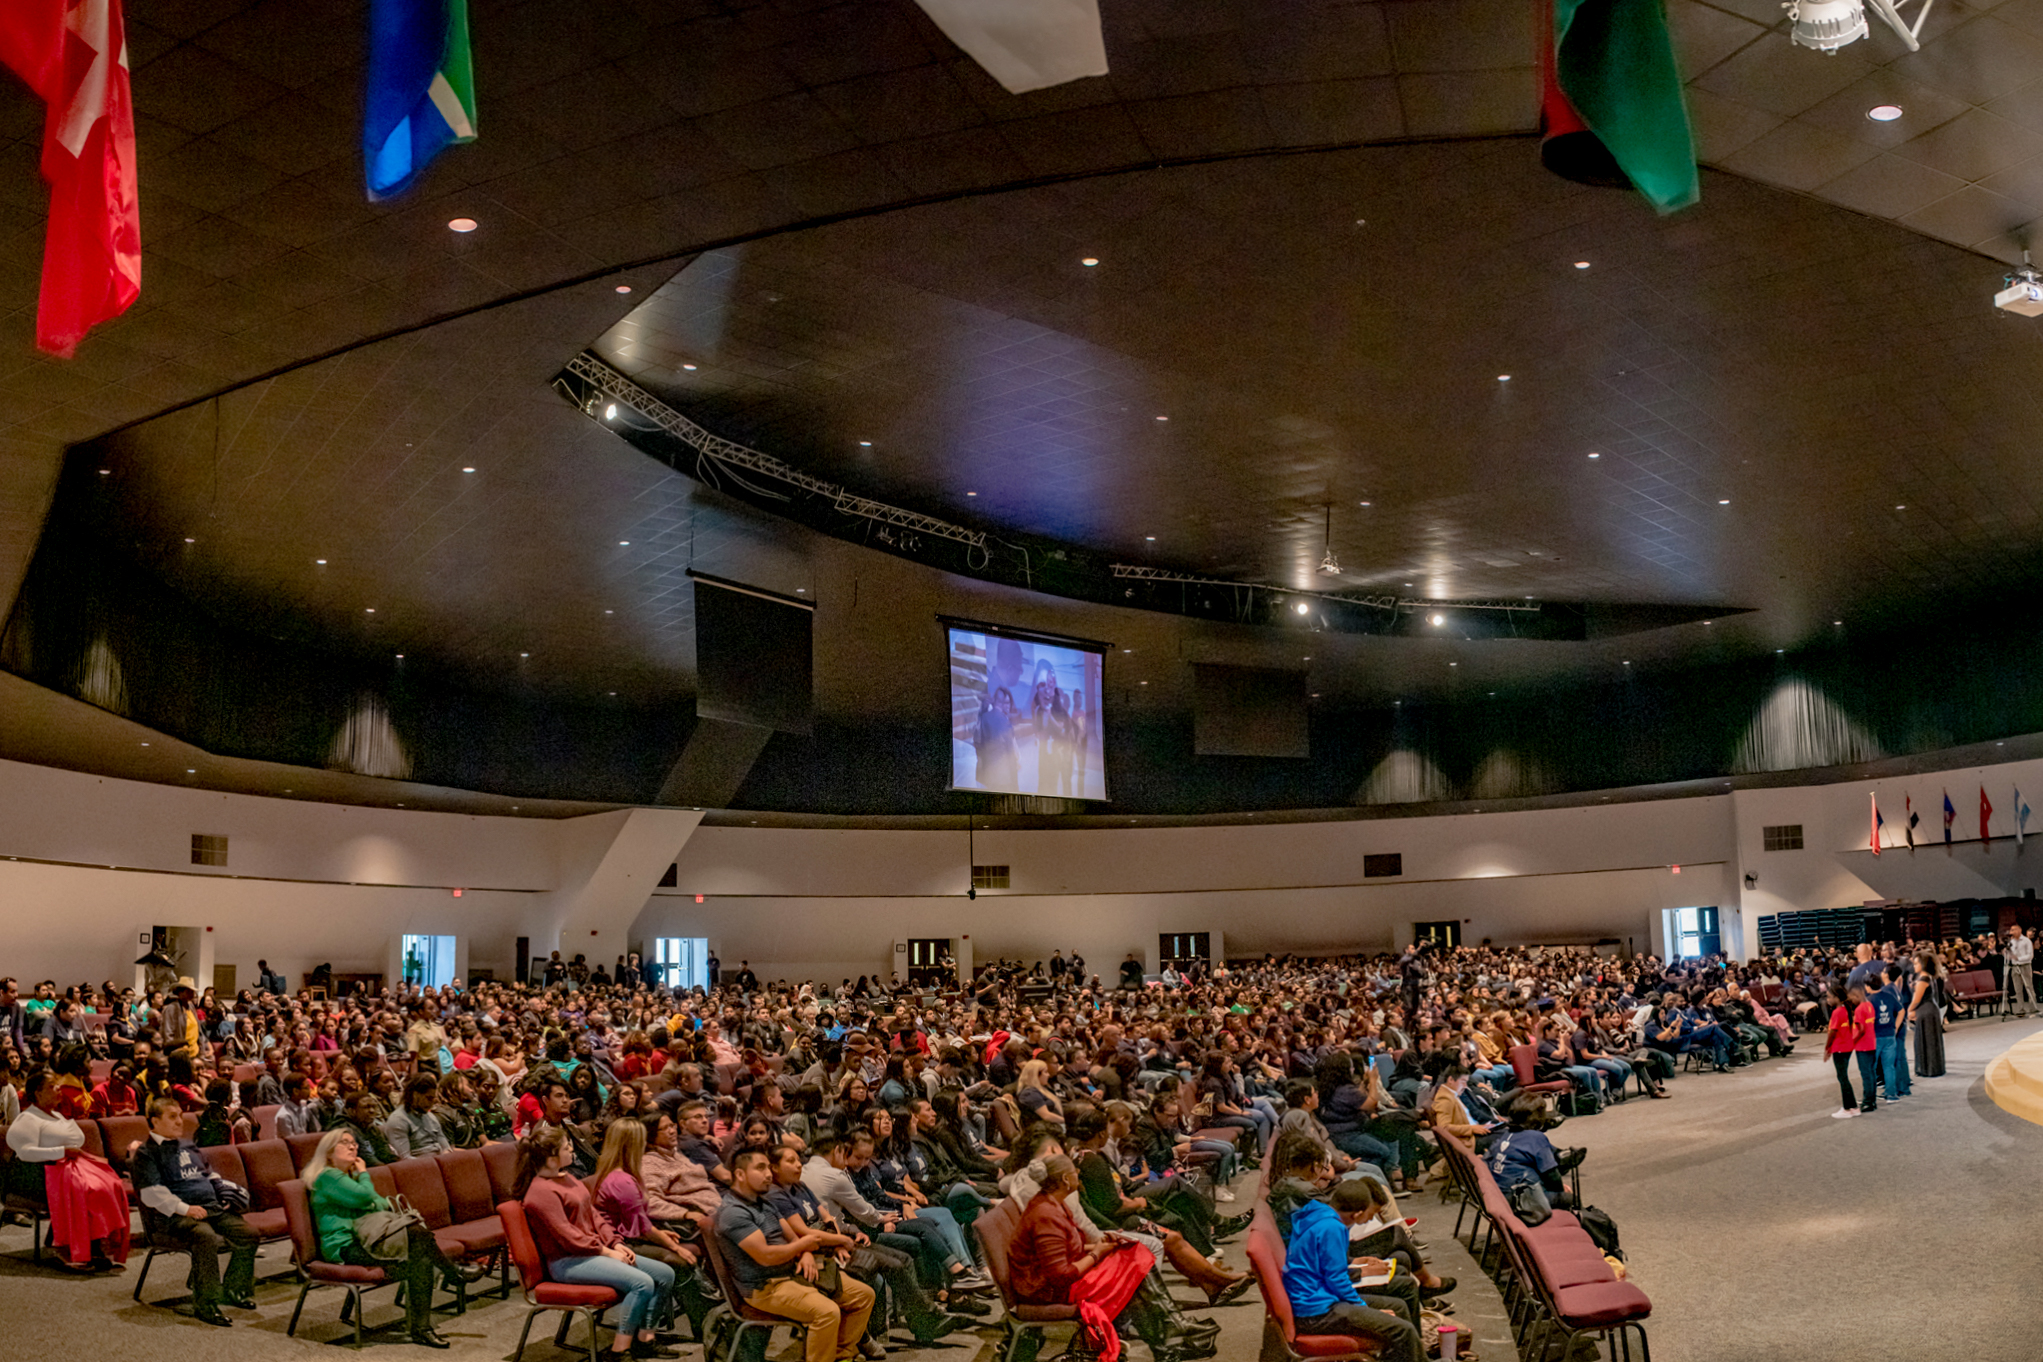 Youth rally at the World Harvest Outreach Seventh-day Adventist Church in Houston.